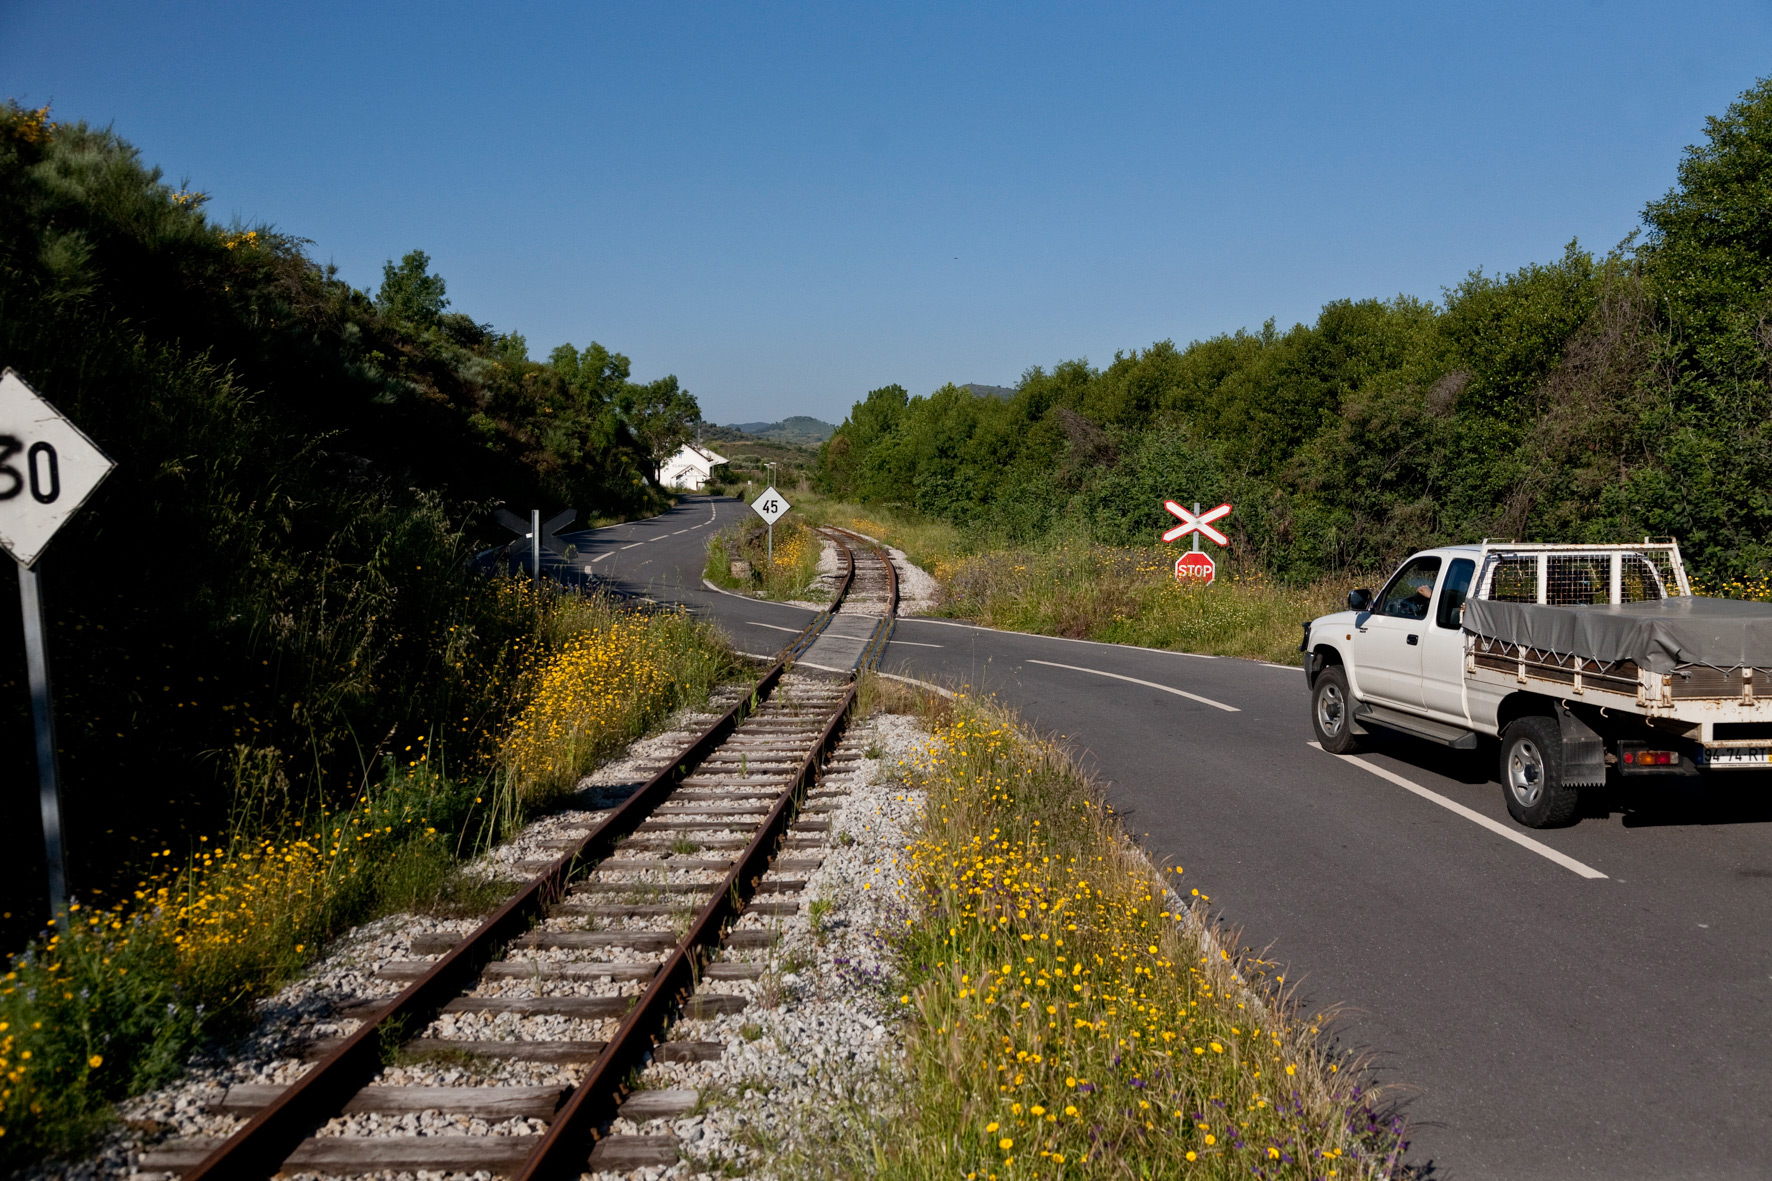 Portugal, Trâs-os-Montes. 2010. Railway crossing of the derelict Tua line.